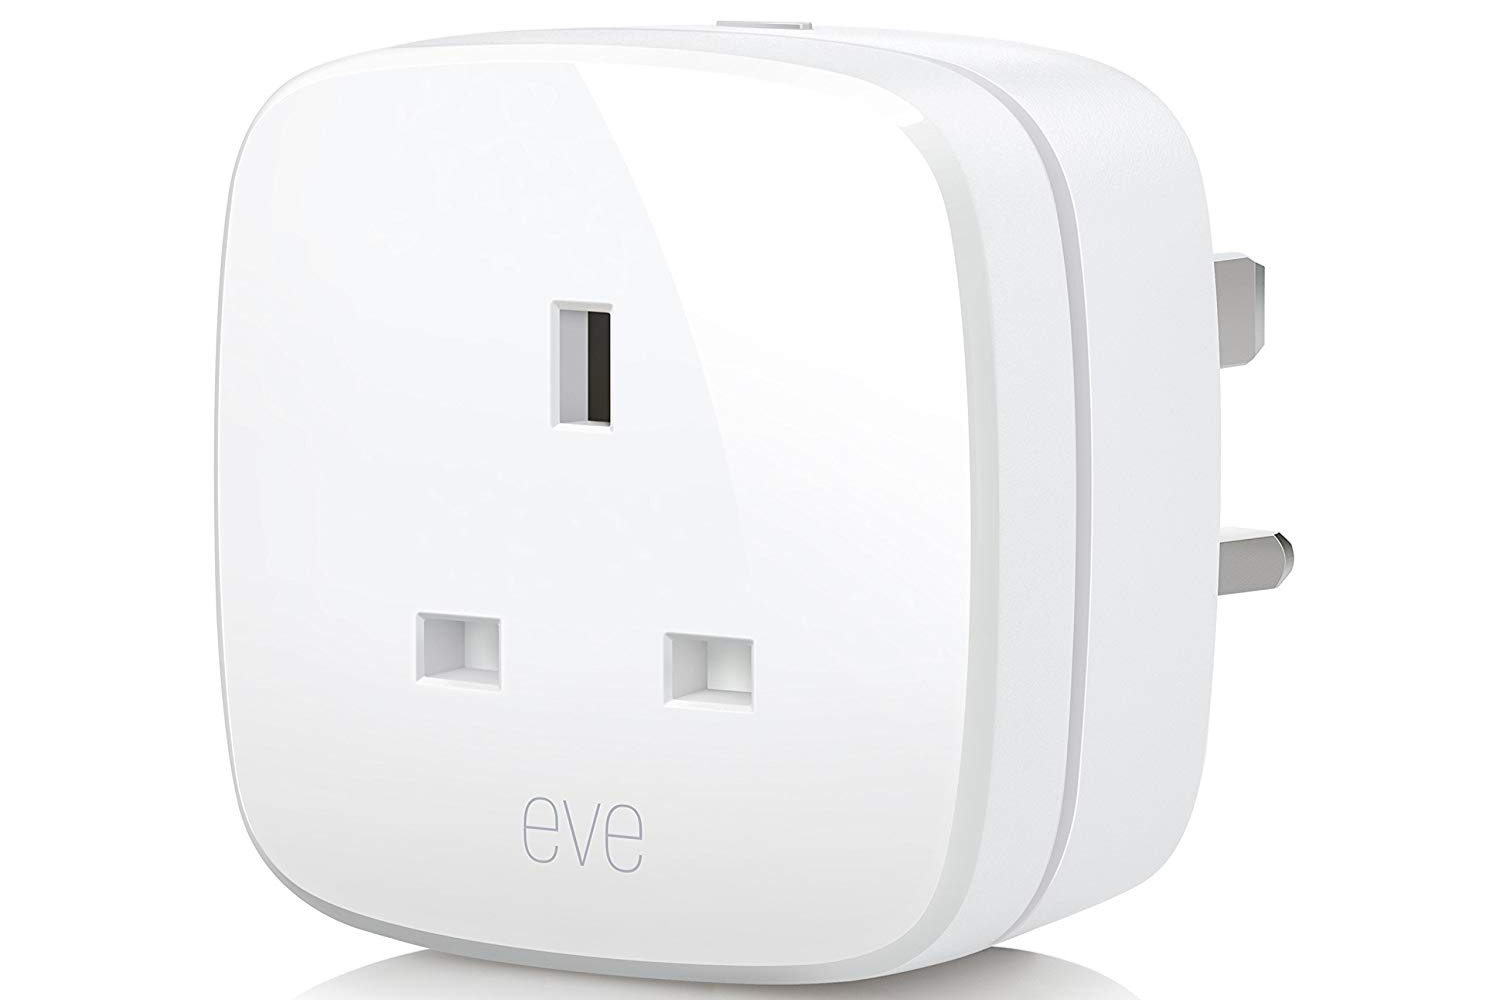 Eve Energy - 100-240V, 2500W, Bluetooth LE, manual switch, consumption monitoring.Buy: Amazon, Direct